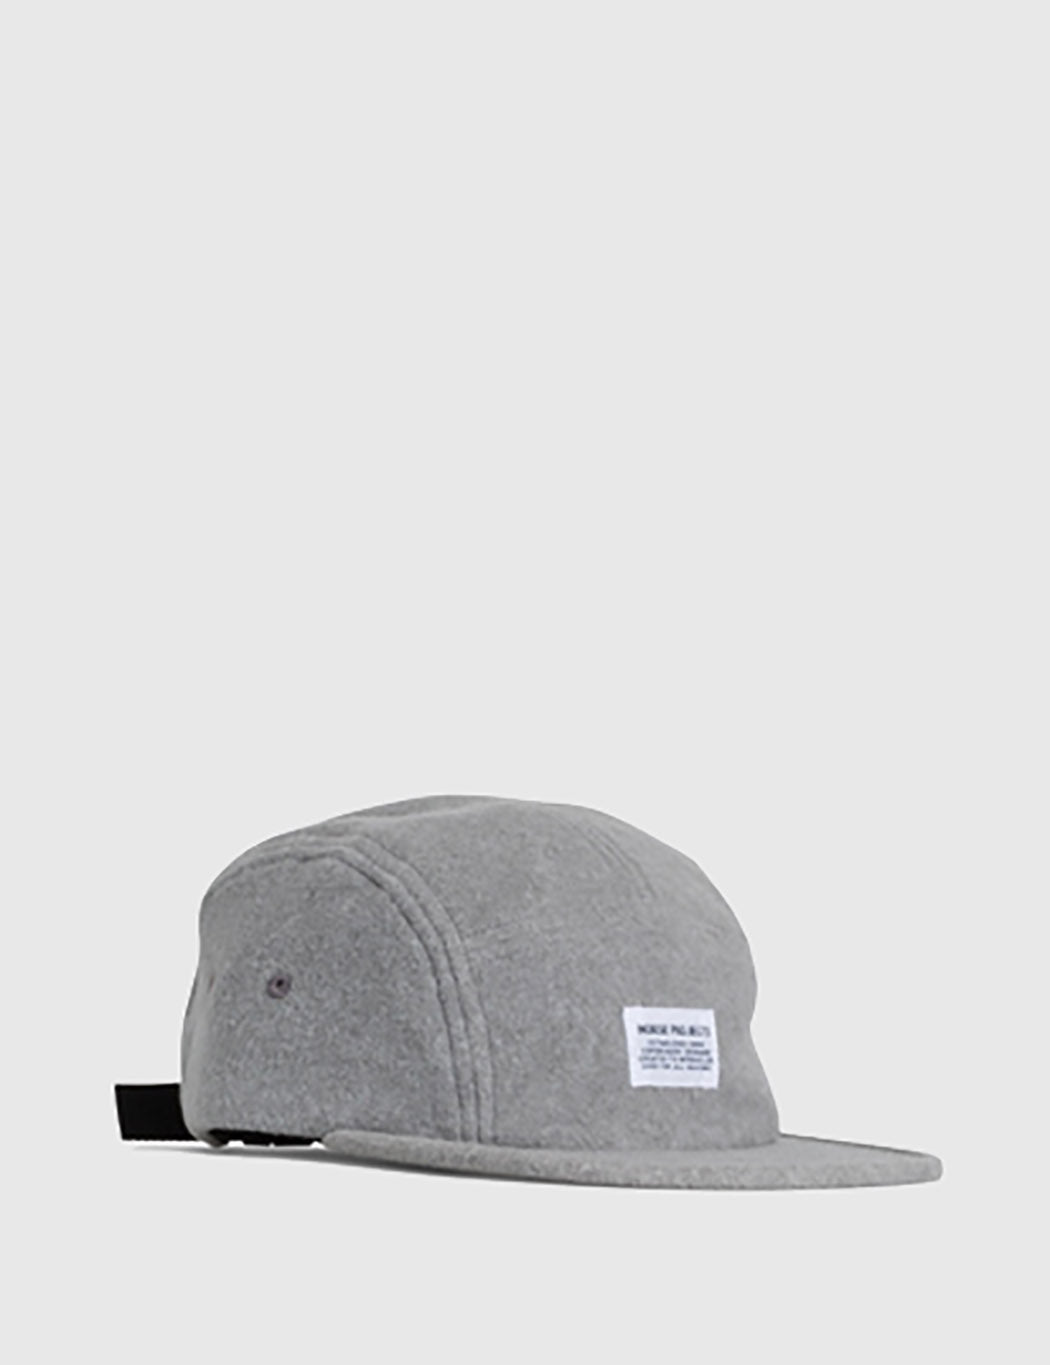 92a035d8670 Norse Projects Polartec 5 Panel Cap - Light Grey